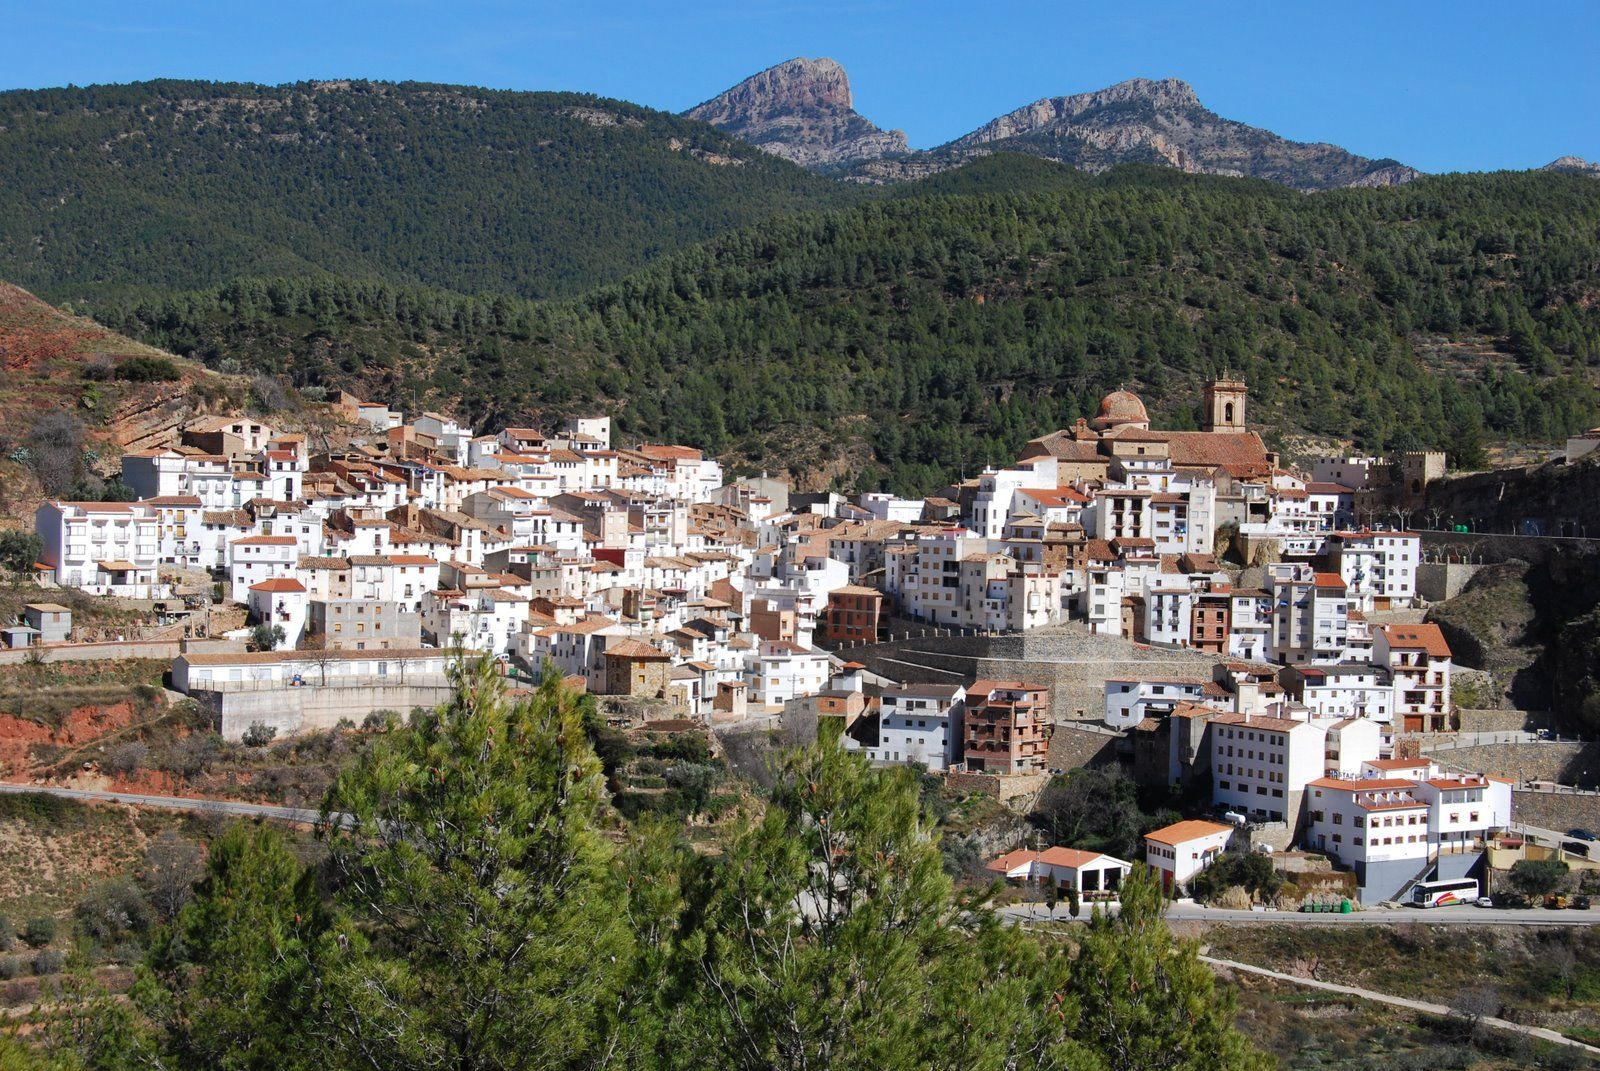 Villahermosa del Río, a beautiful mountain village located in Castellón, Spain.